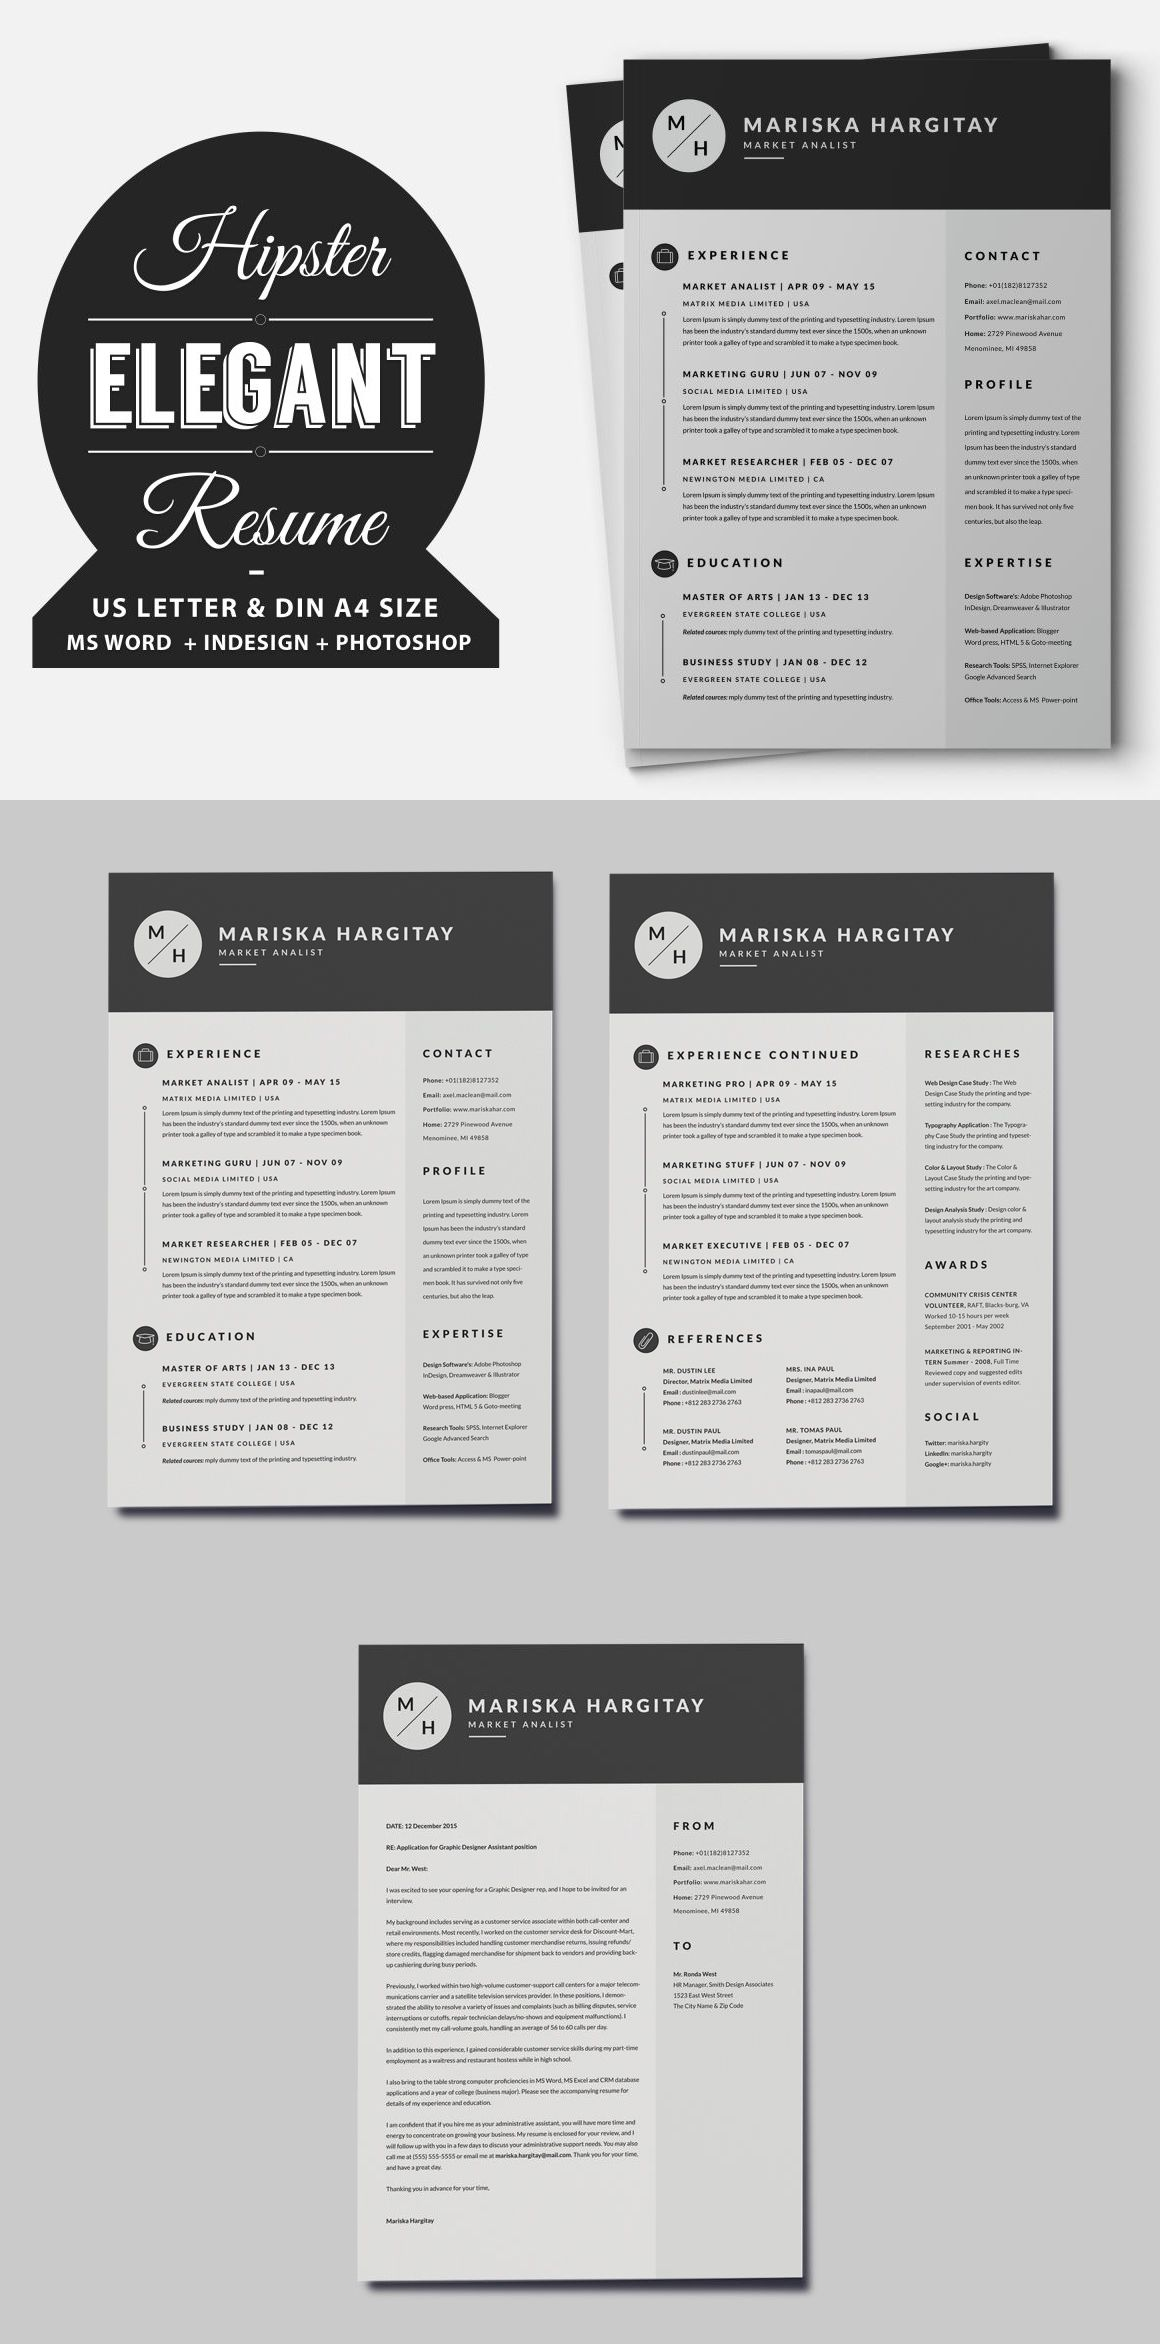 Two Pages Hipster Elegant Resume / CV Set Template INDD